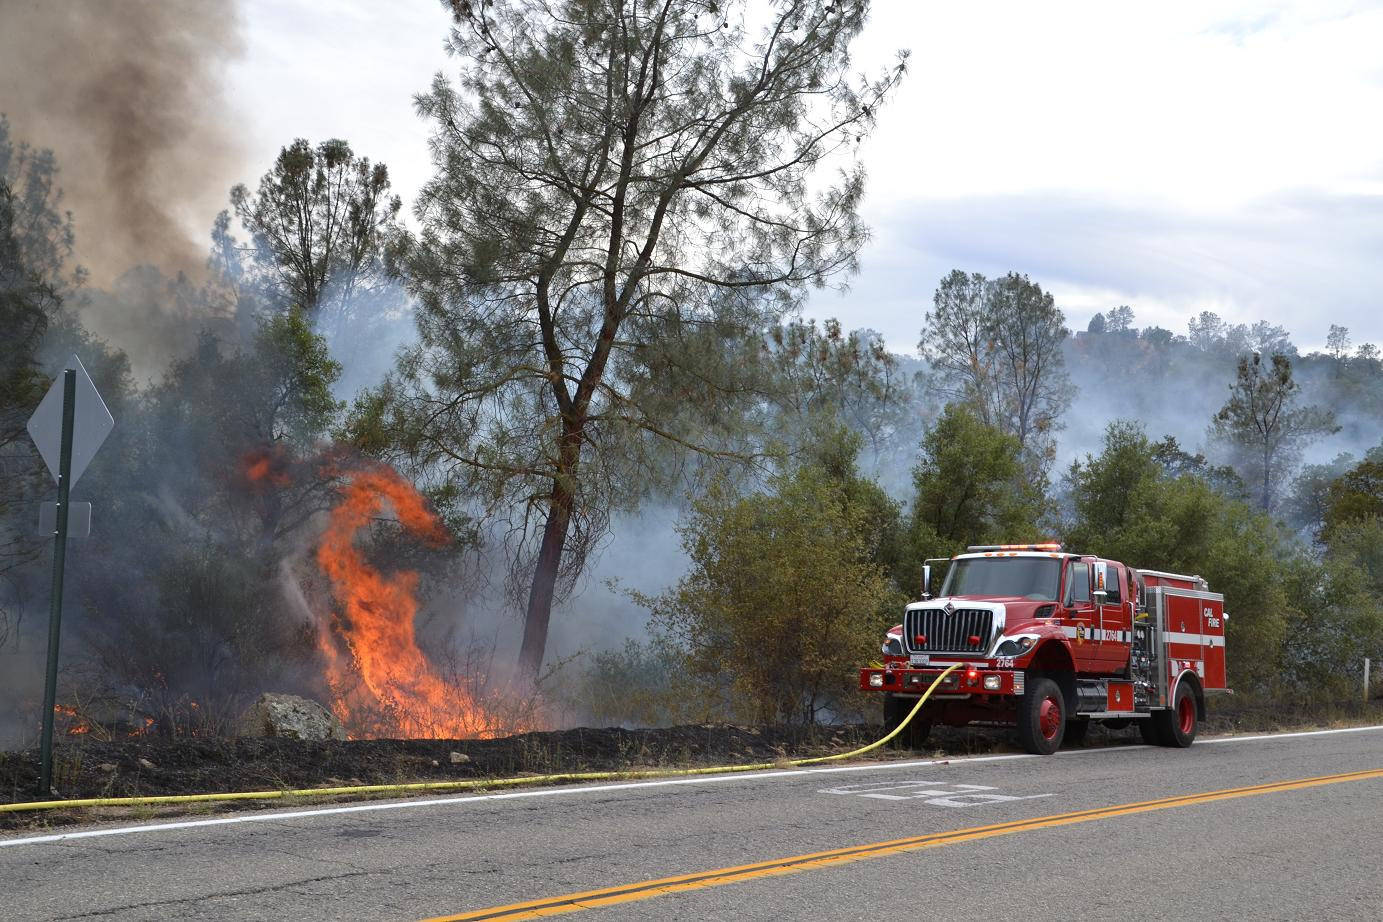 Engine 2764 near flames on Road 400